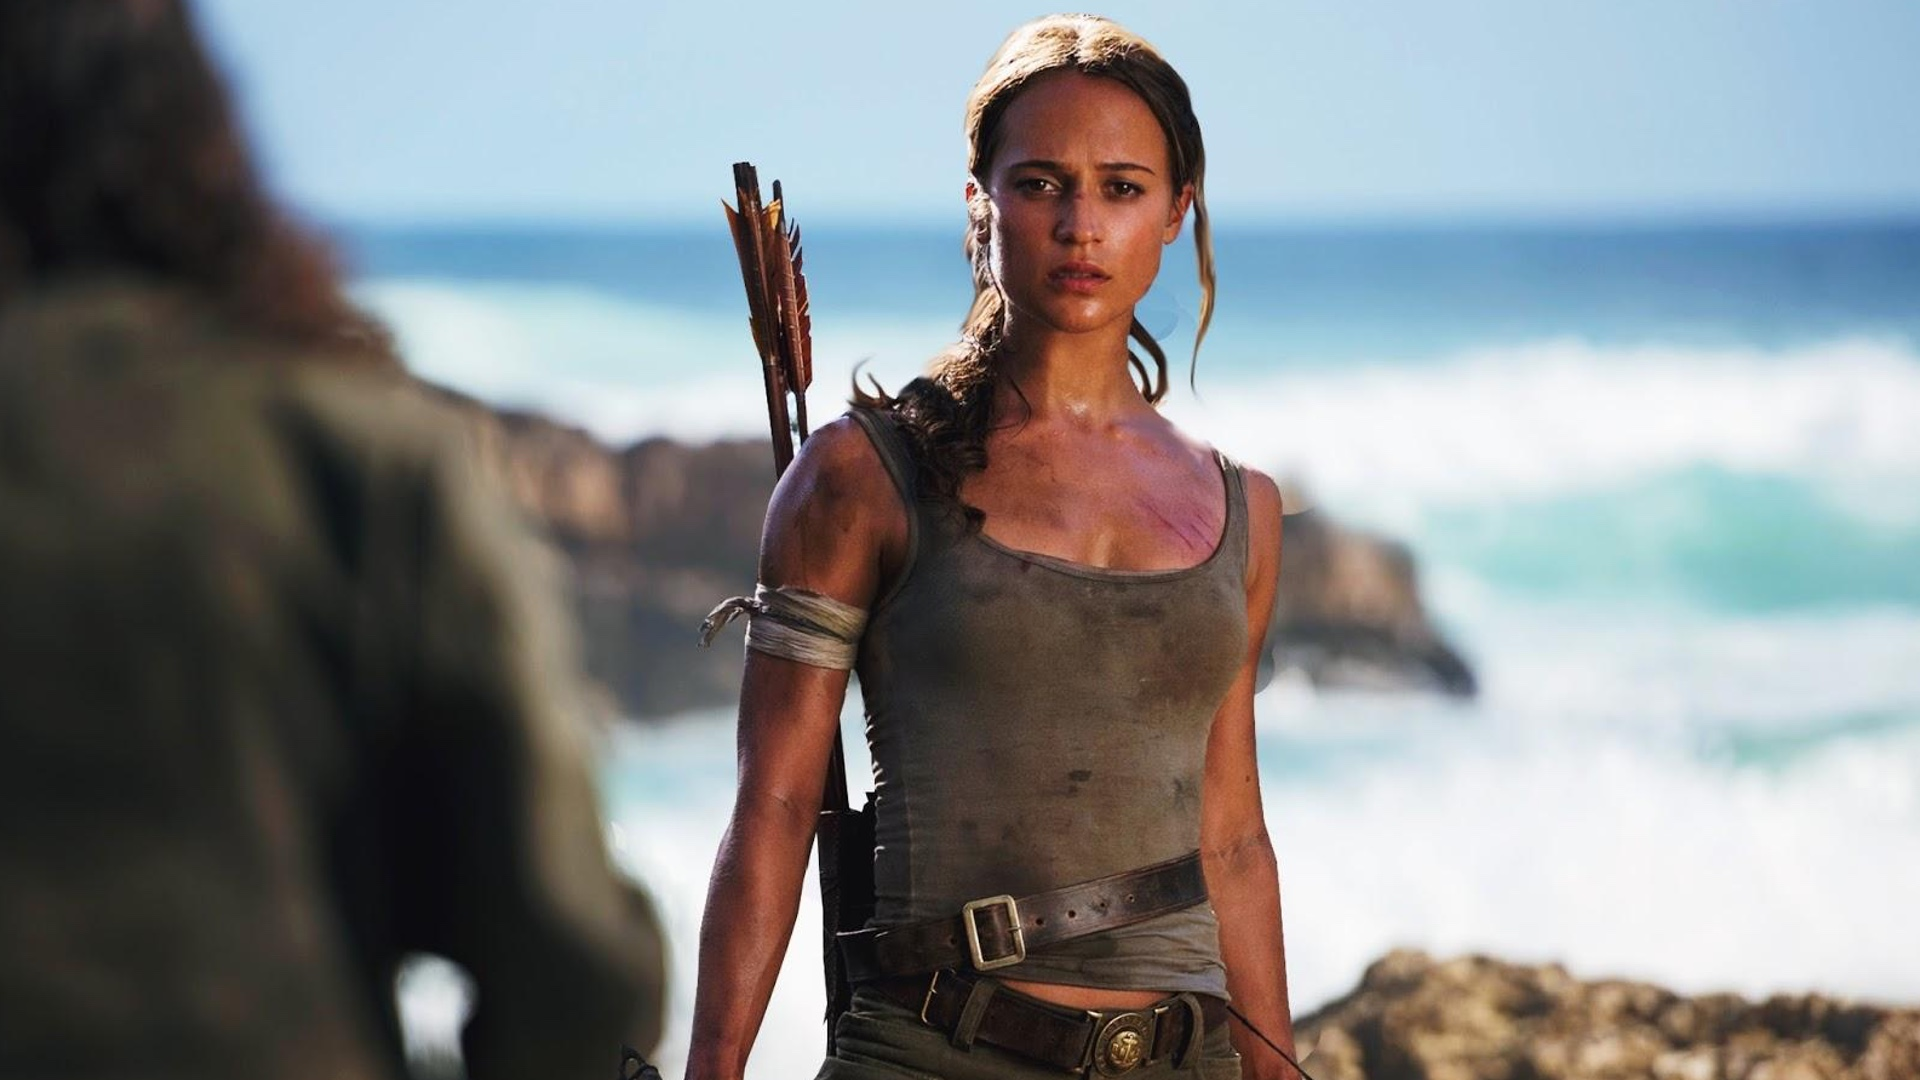 a775fe9fa Alicia Vikander is Returning to The Role of Lara Croft in a TOMB RAIDER  Sequel — GeekTyrant